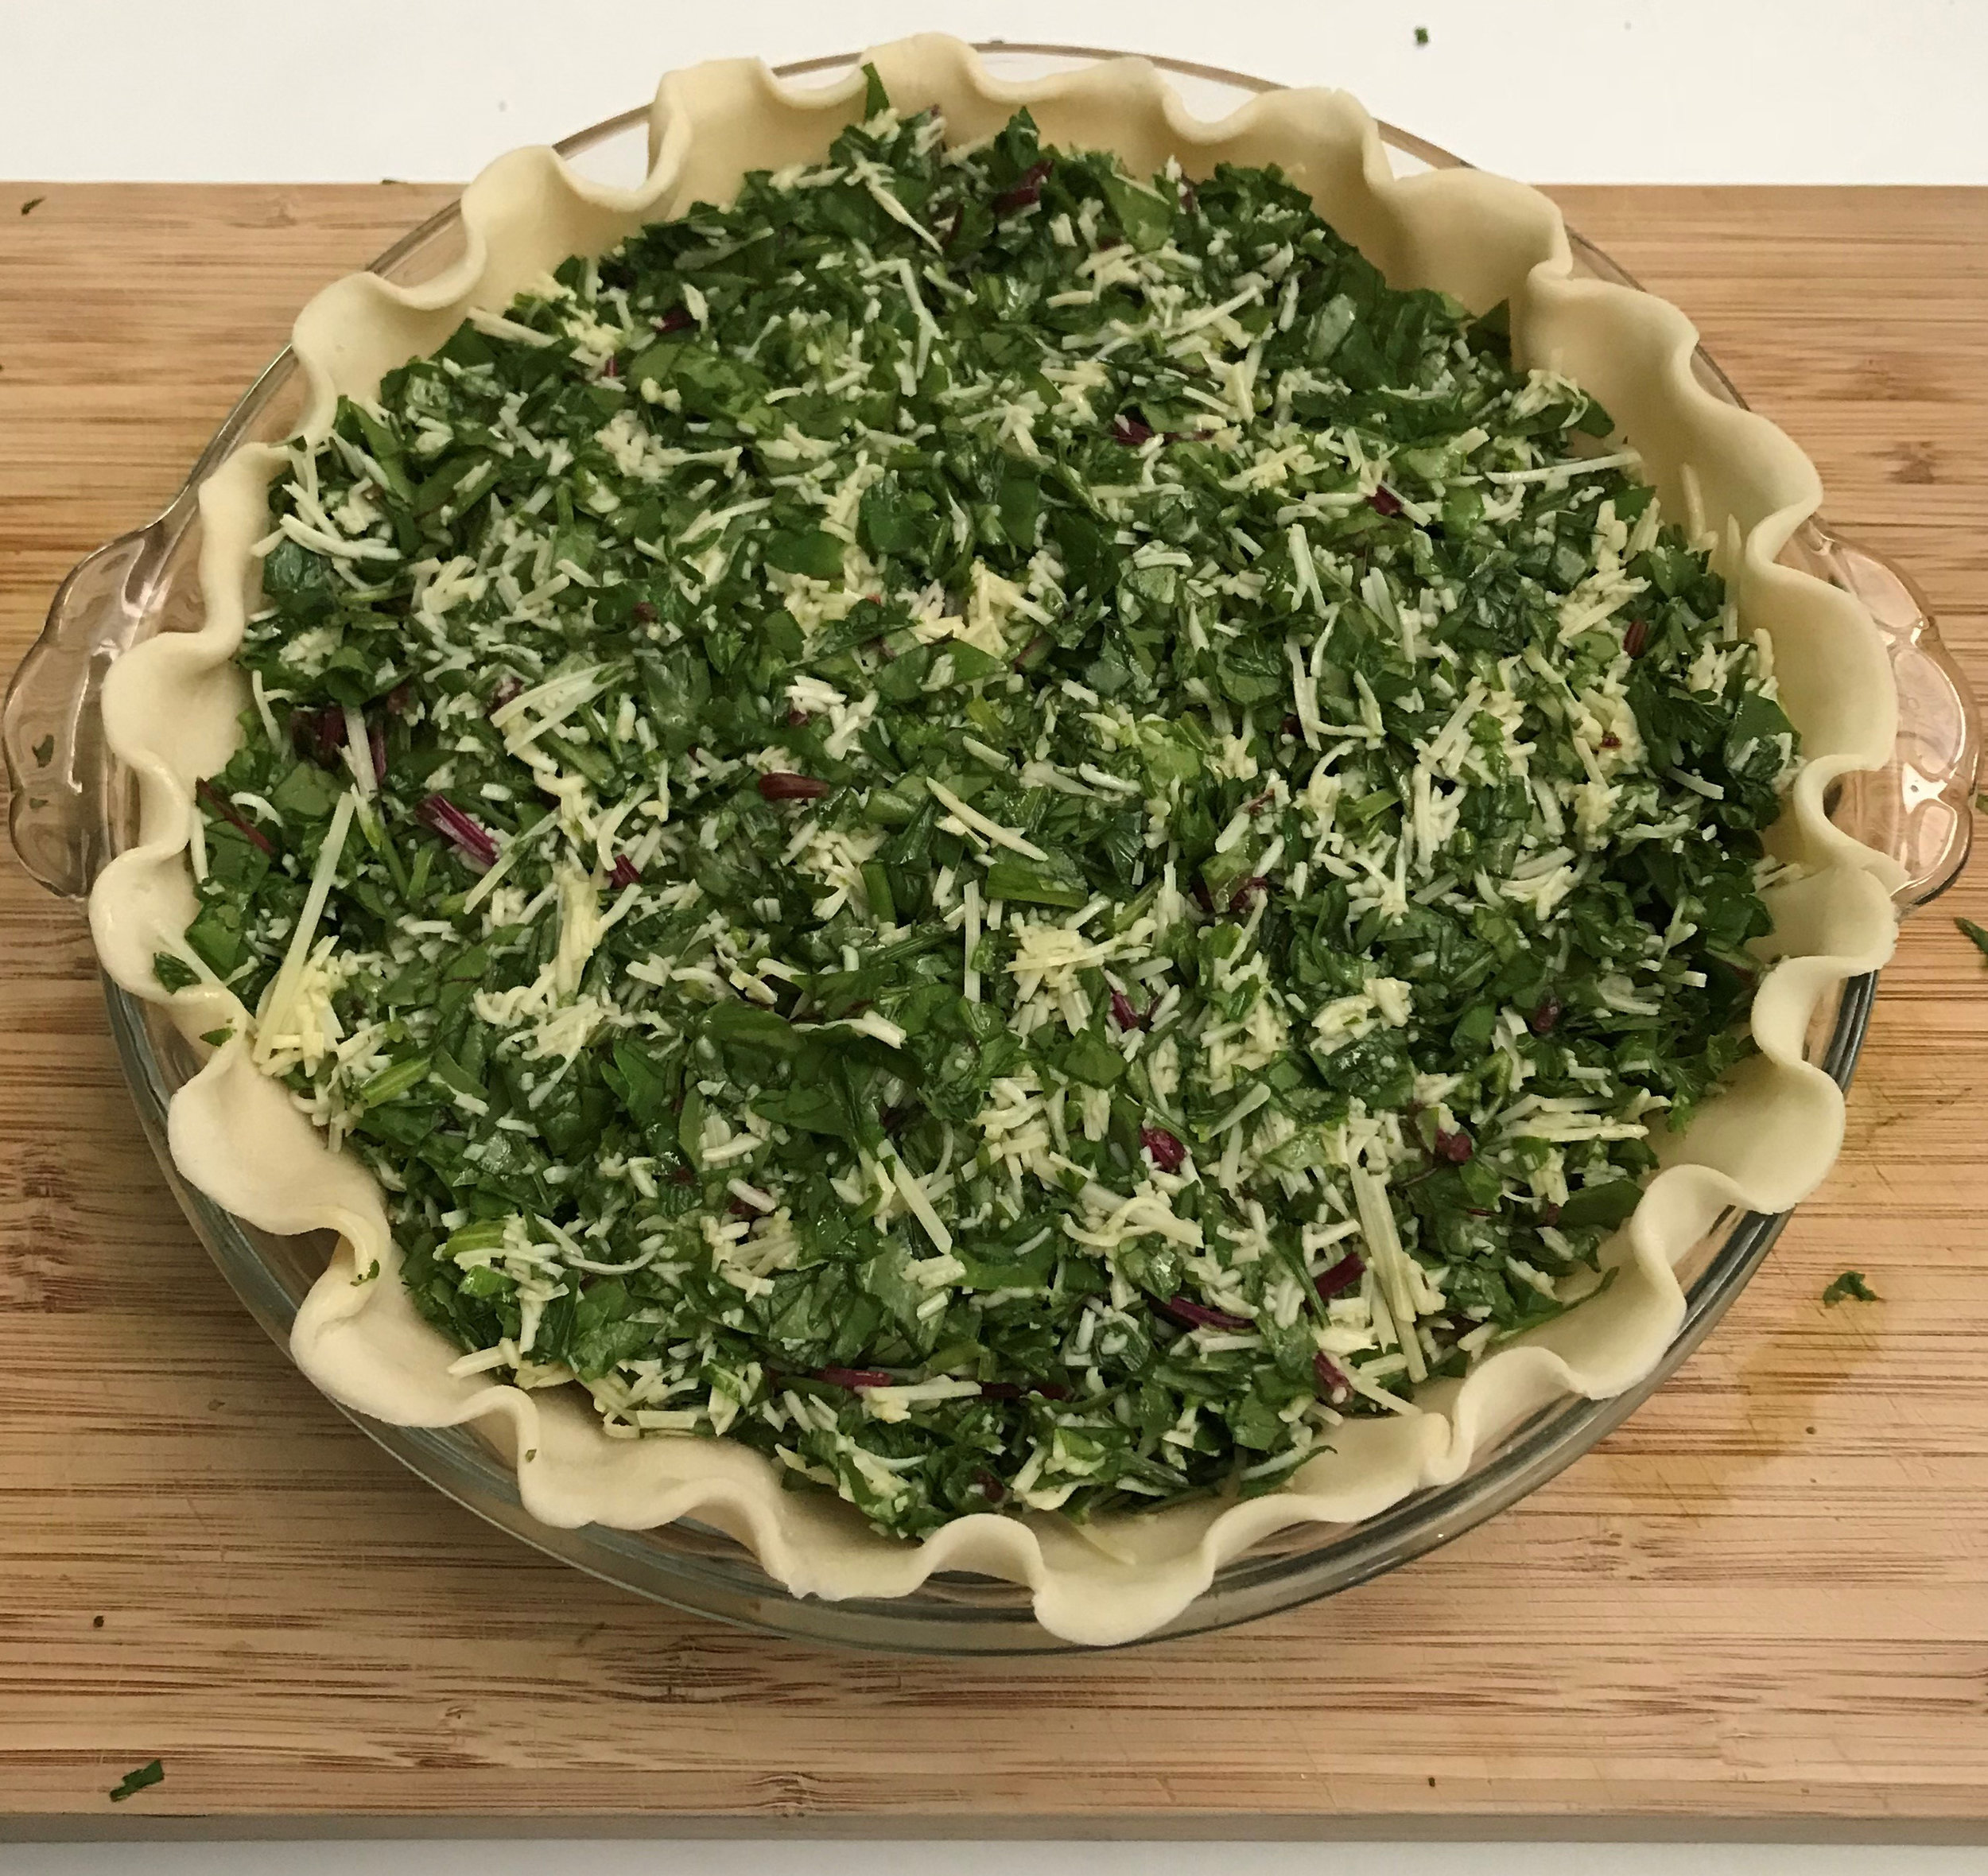 Mix in remaining ingredients and pour into pie shell